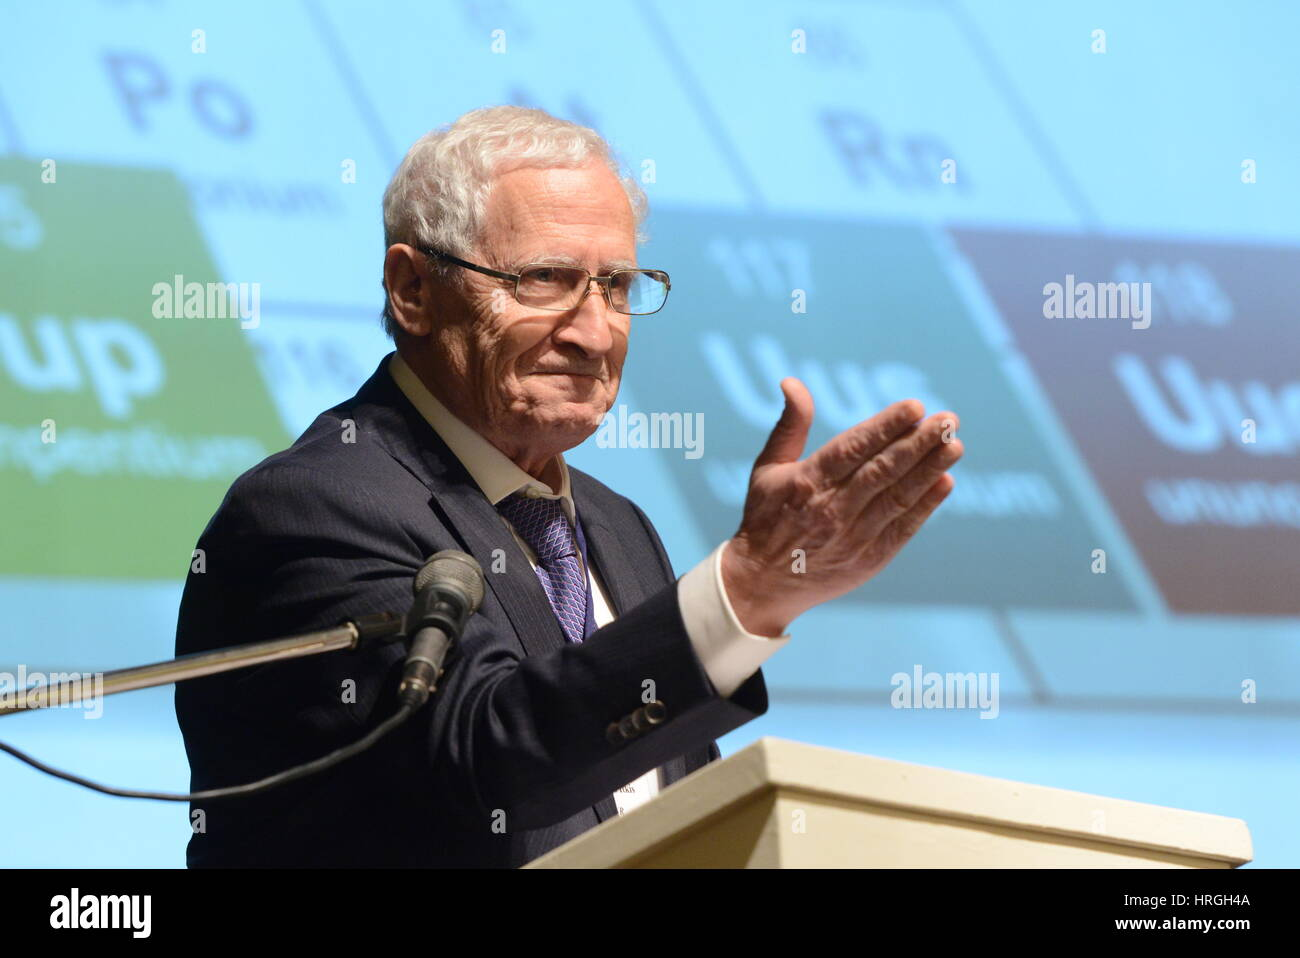 Moscow, Russia. 2nd Mar, 2017. Mikhail Itkis, Vice-Director of the Joint Institute for Nuclear Research, addresses - Stock Image